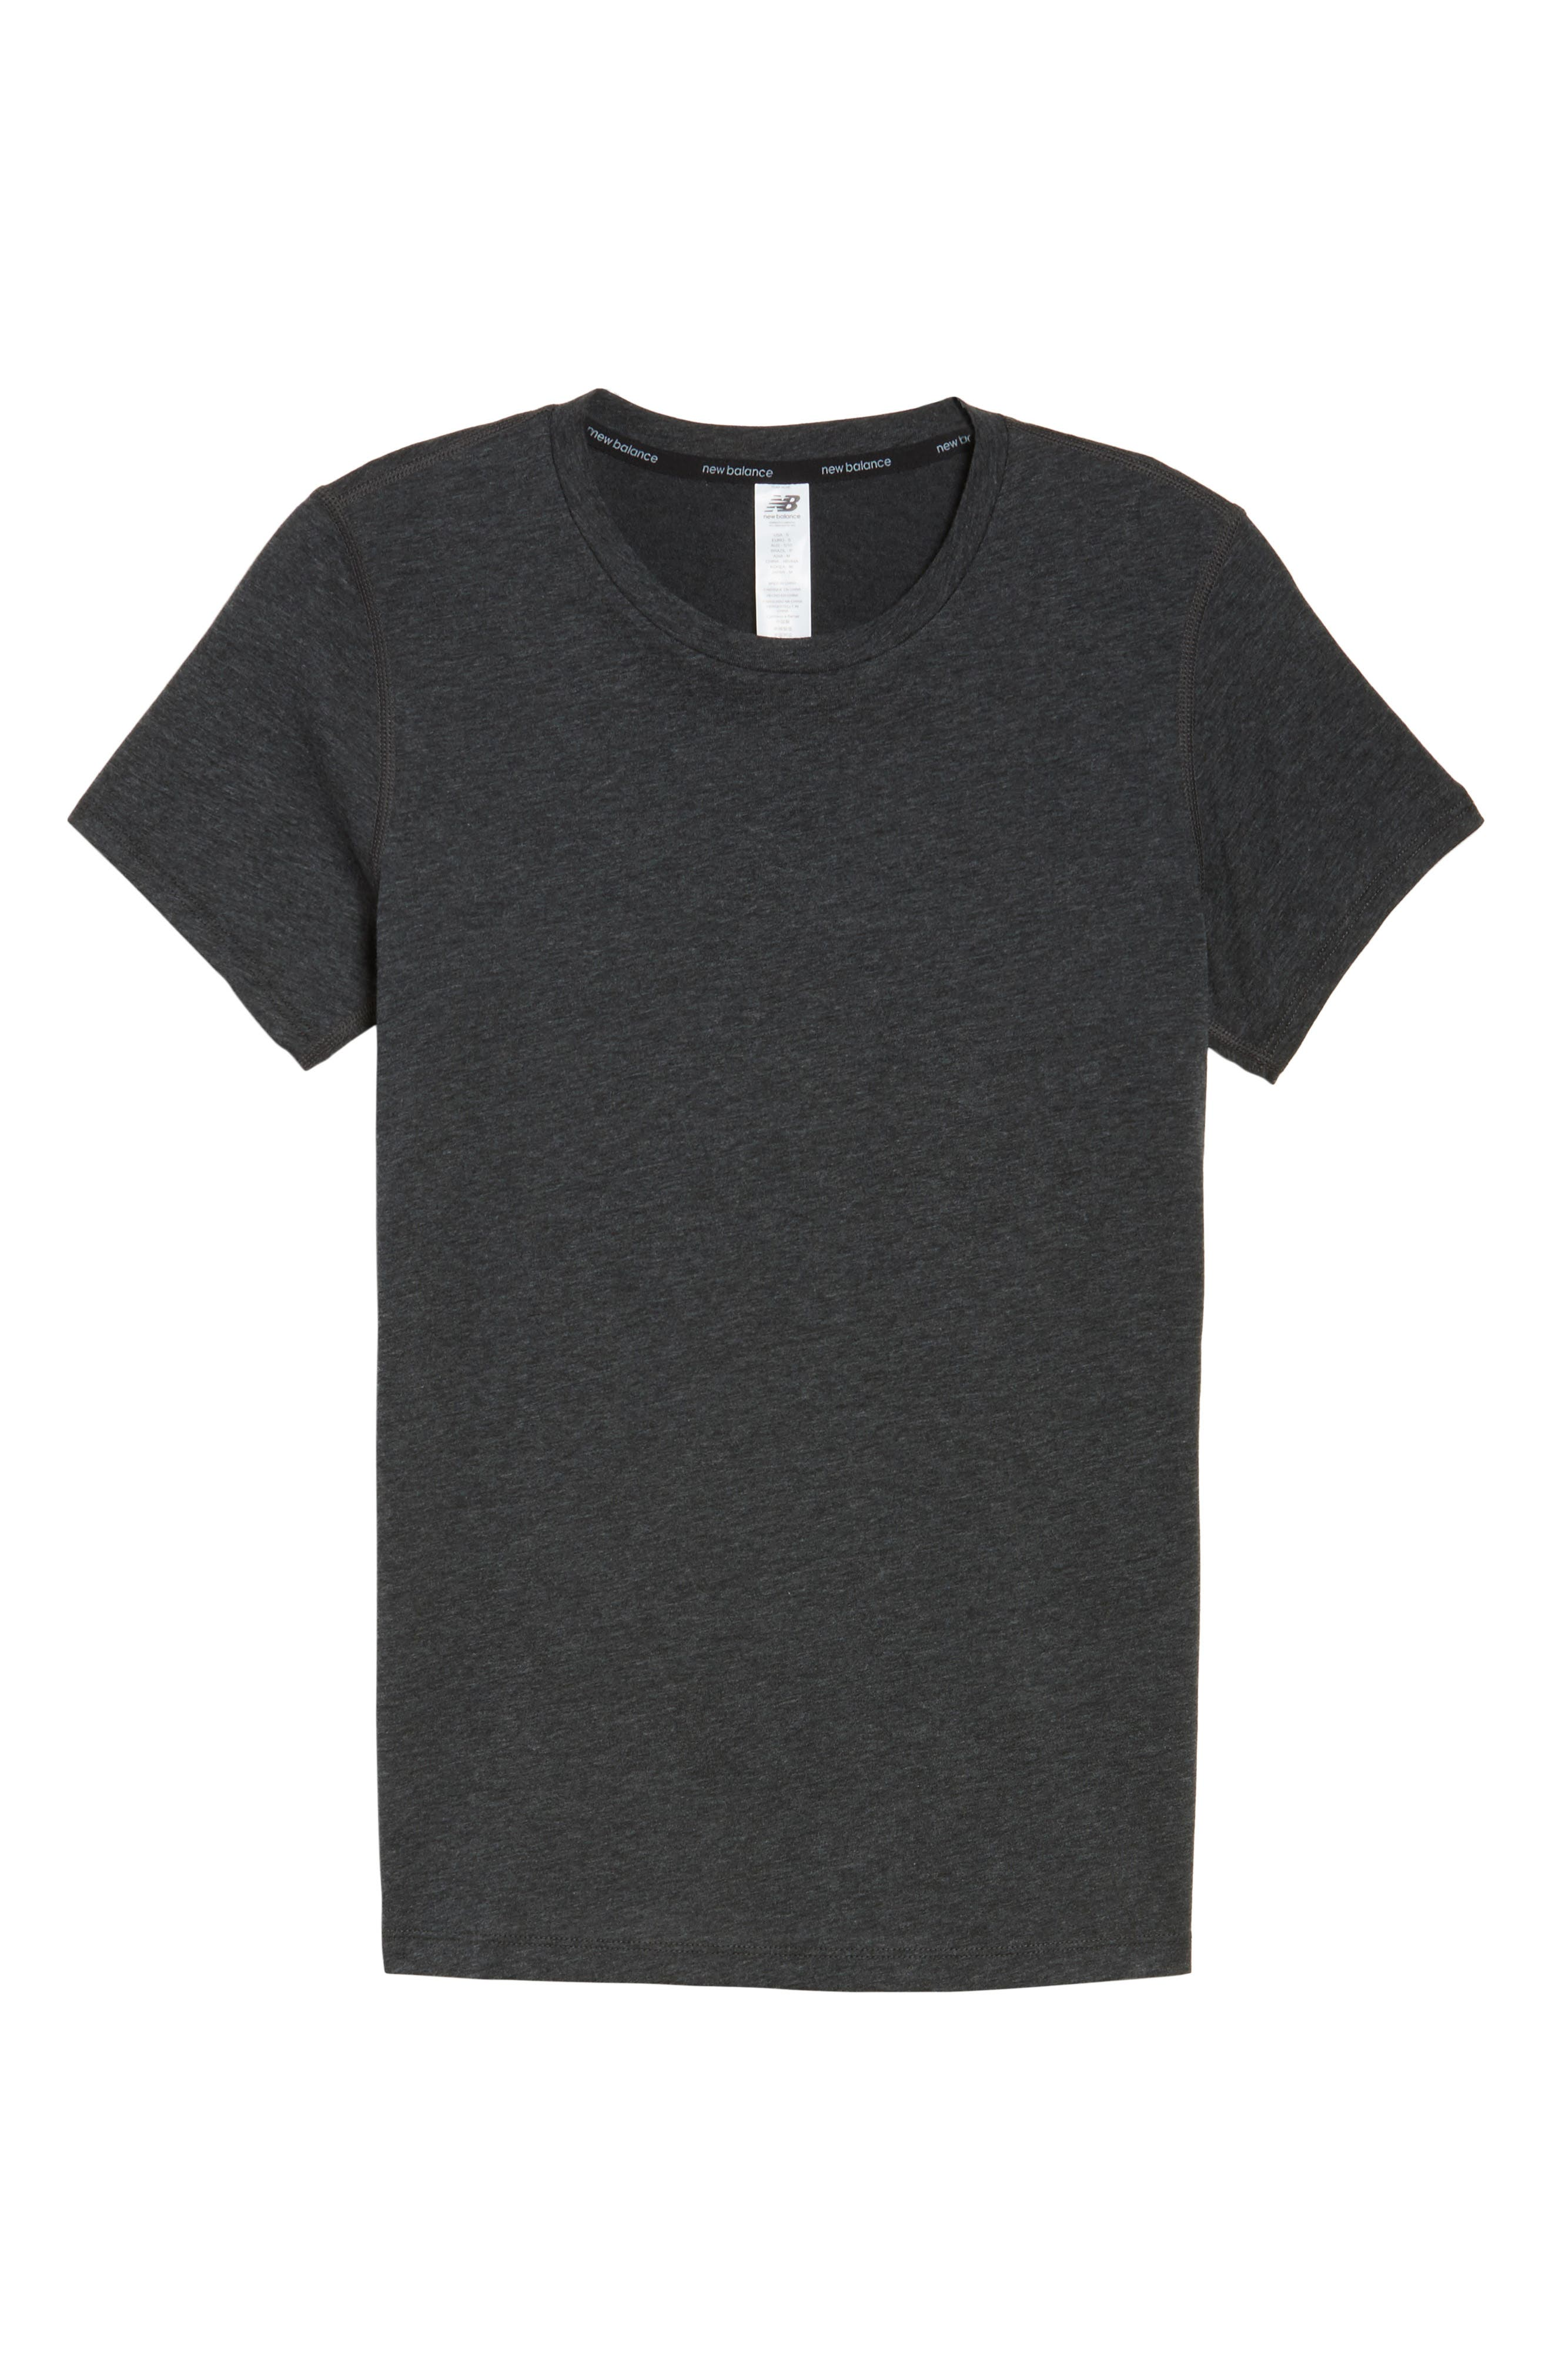 Heather Tech Tee,                             Alternate thumbnail 7, color,                             Black Heather